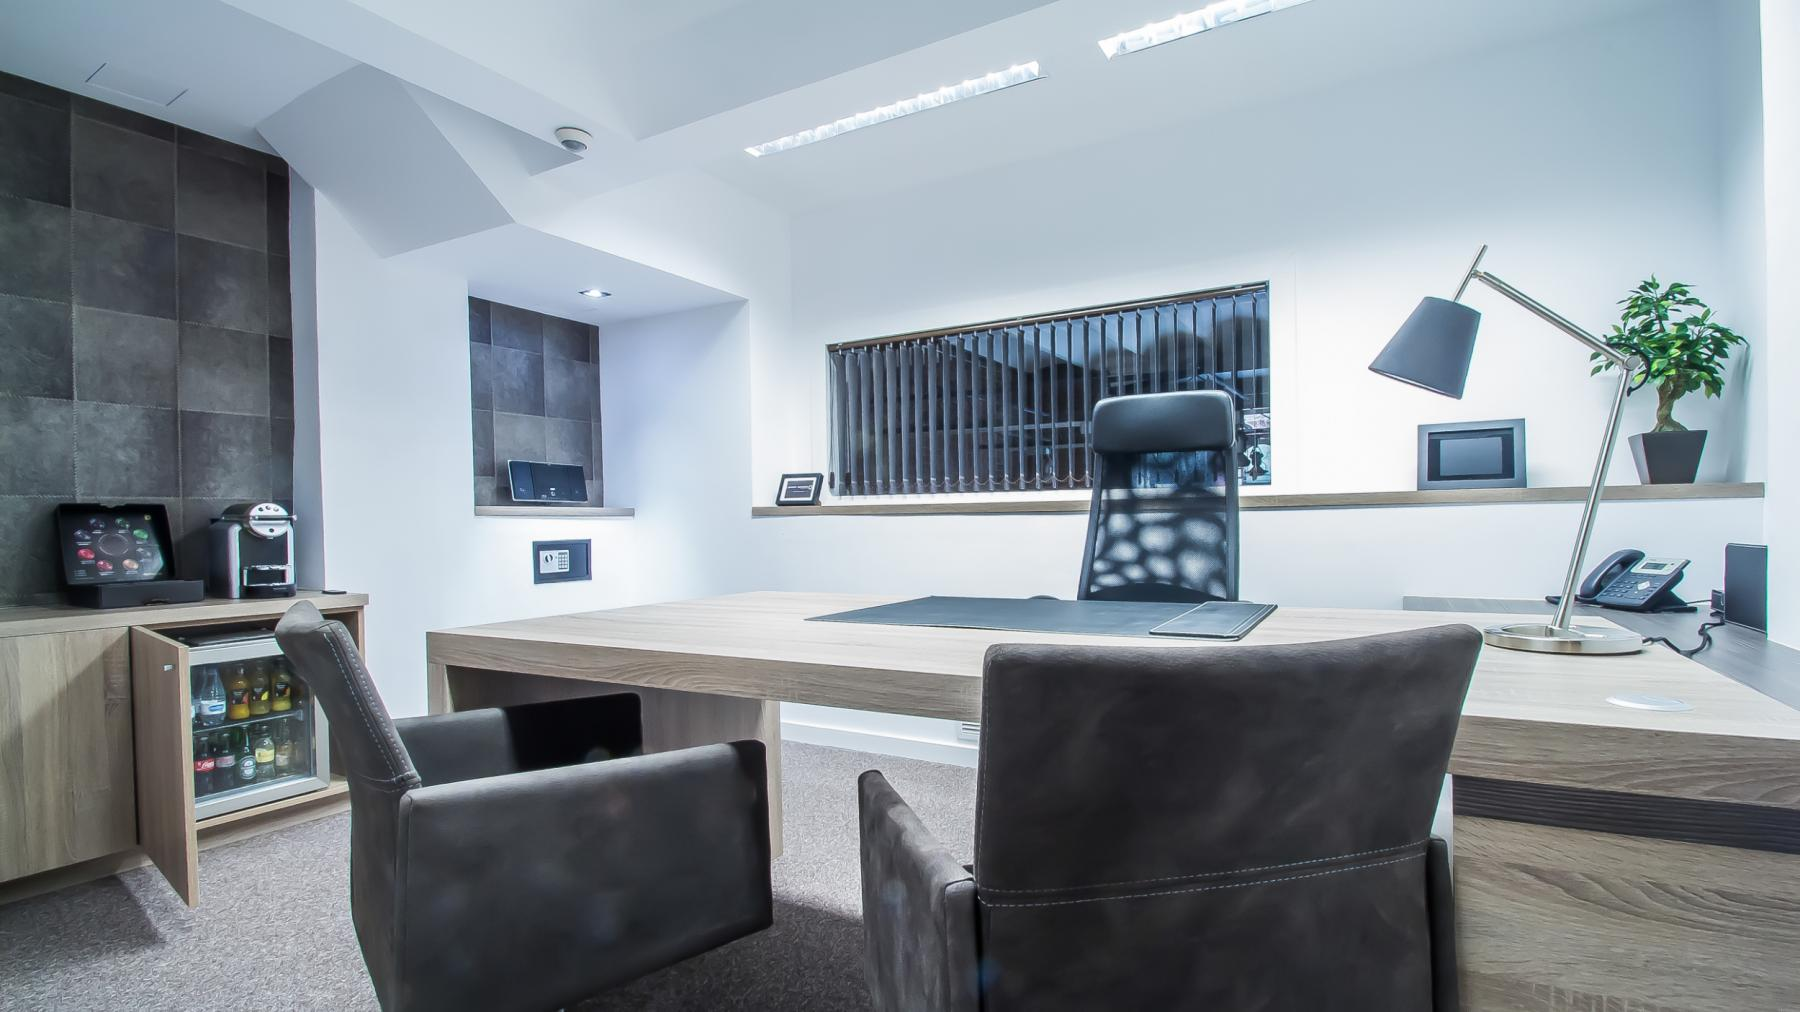 Office to rent available at Carrer d'Aribau 161